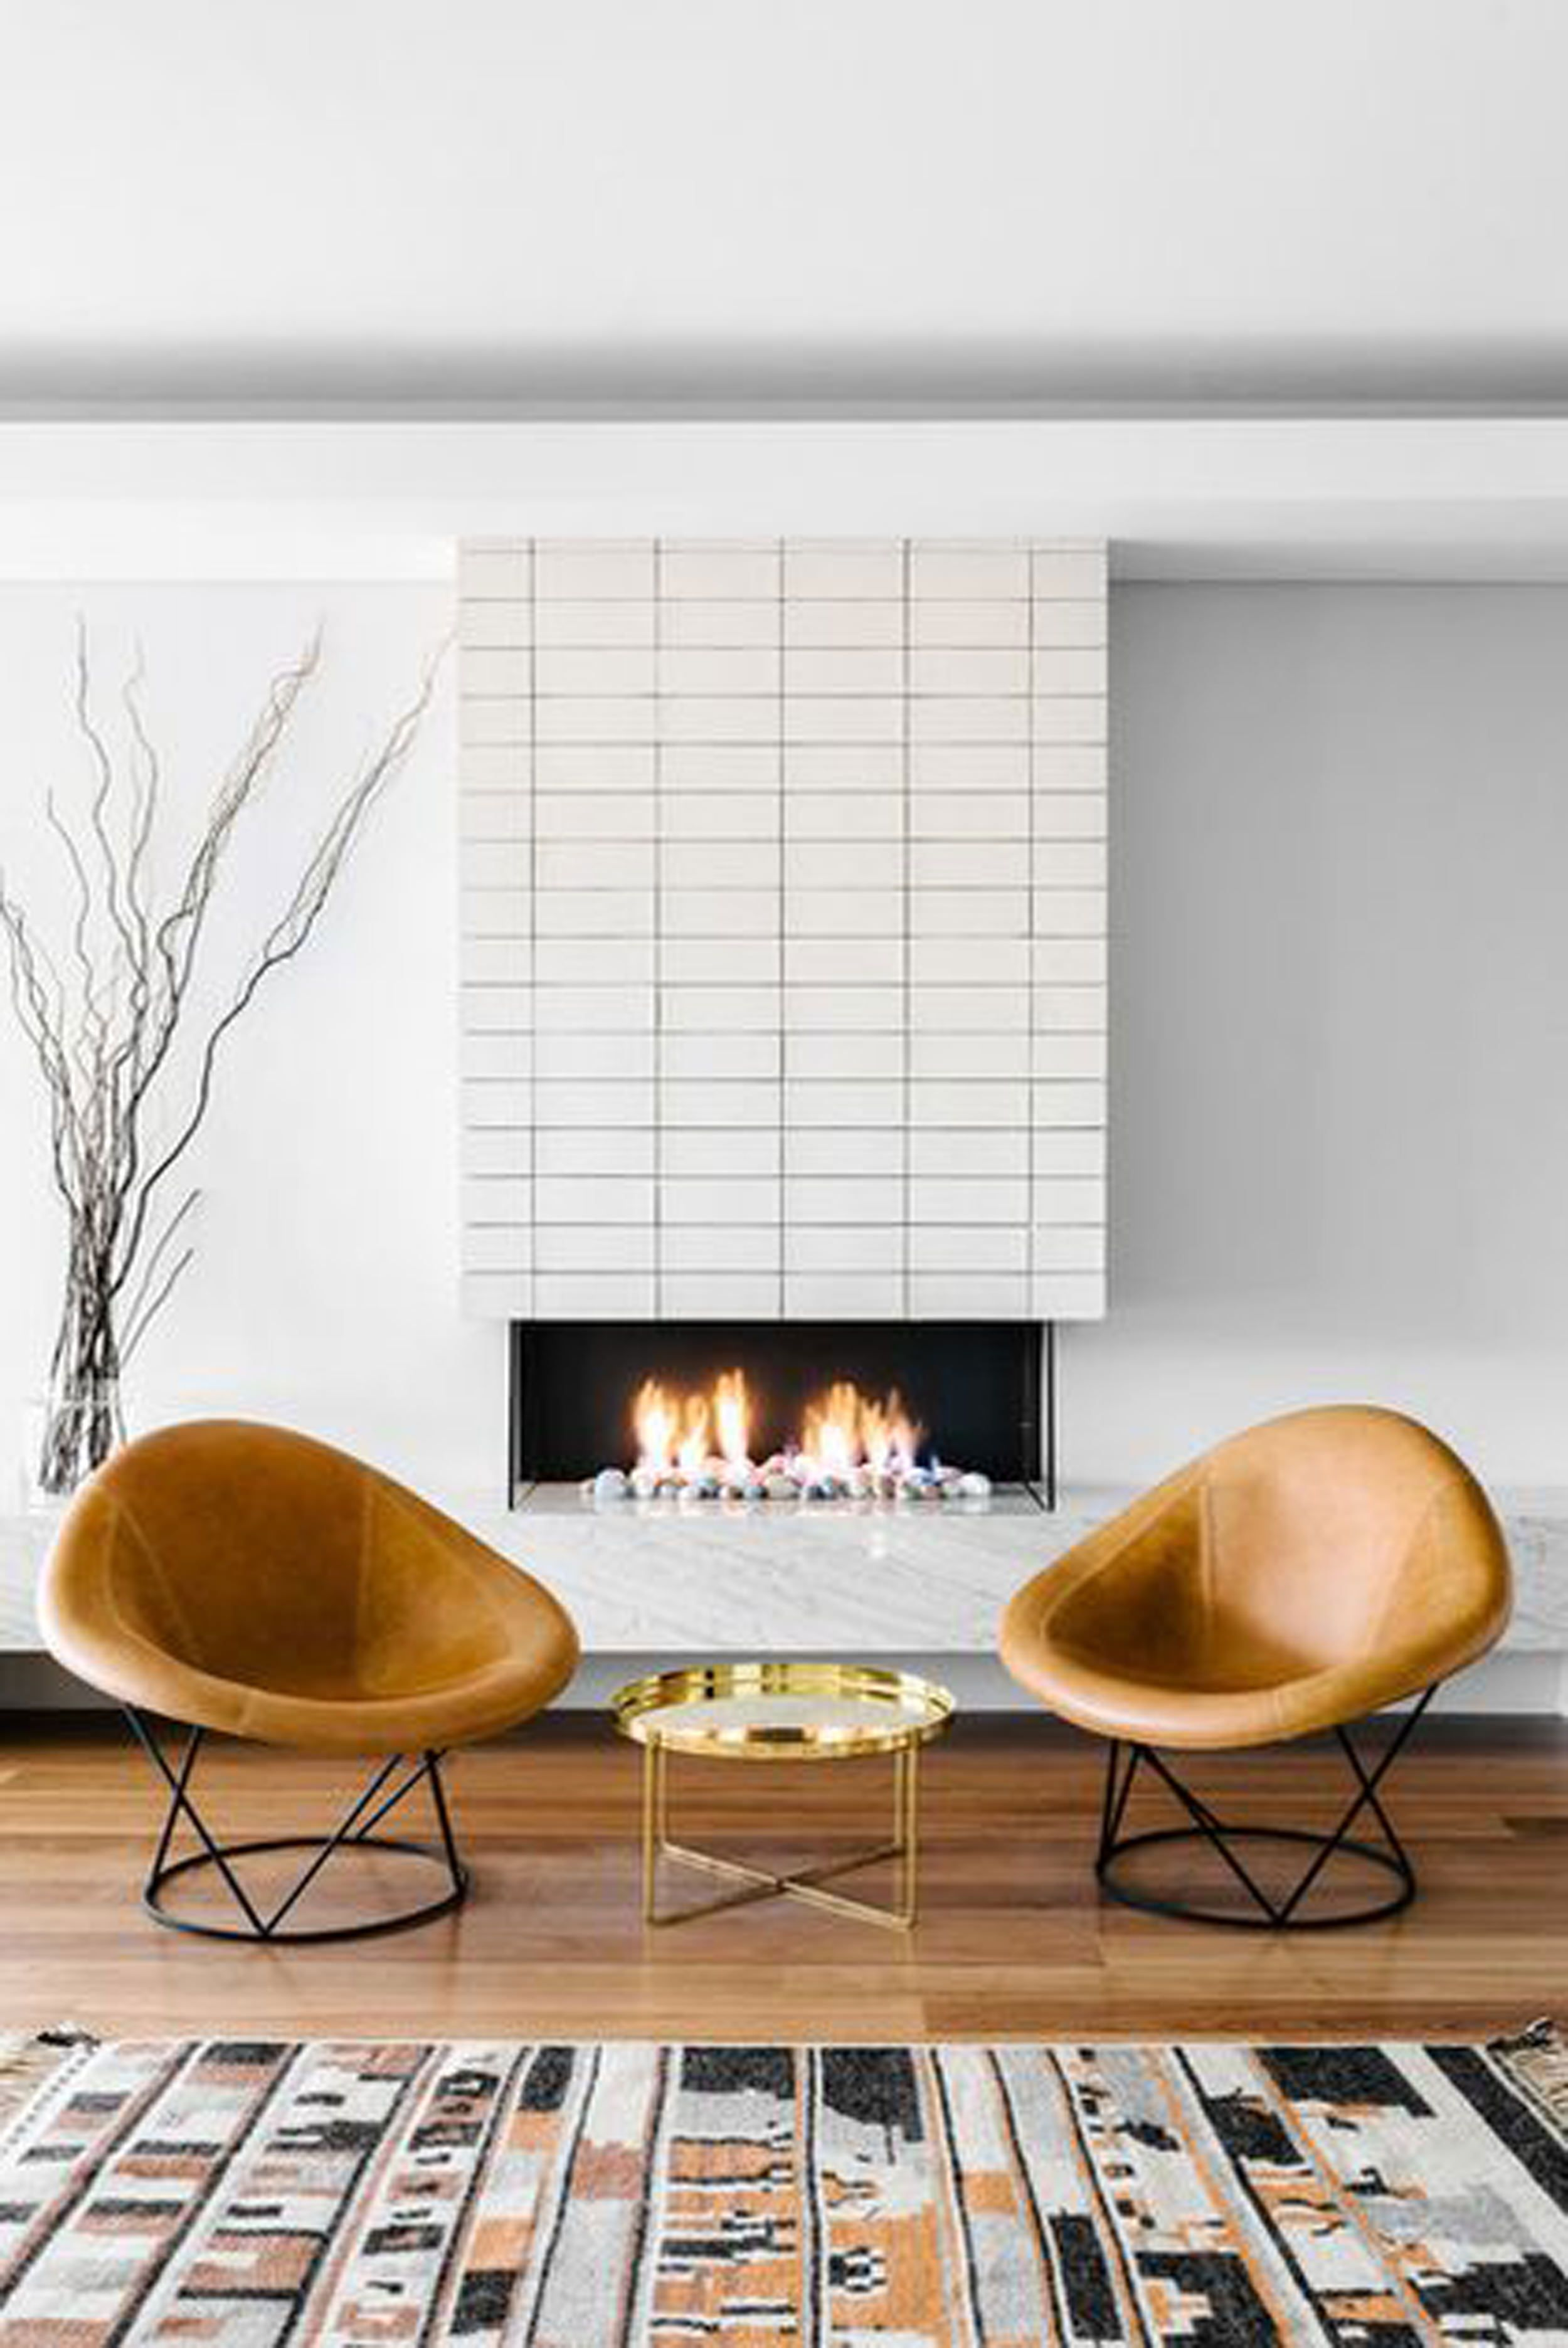 I Design You Decide Mountain Fixer Upper The Fireplace Emily Henderson Mid Century Modern Living Mid Century Modern House Mid Century Modern Interiors